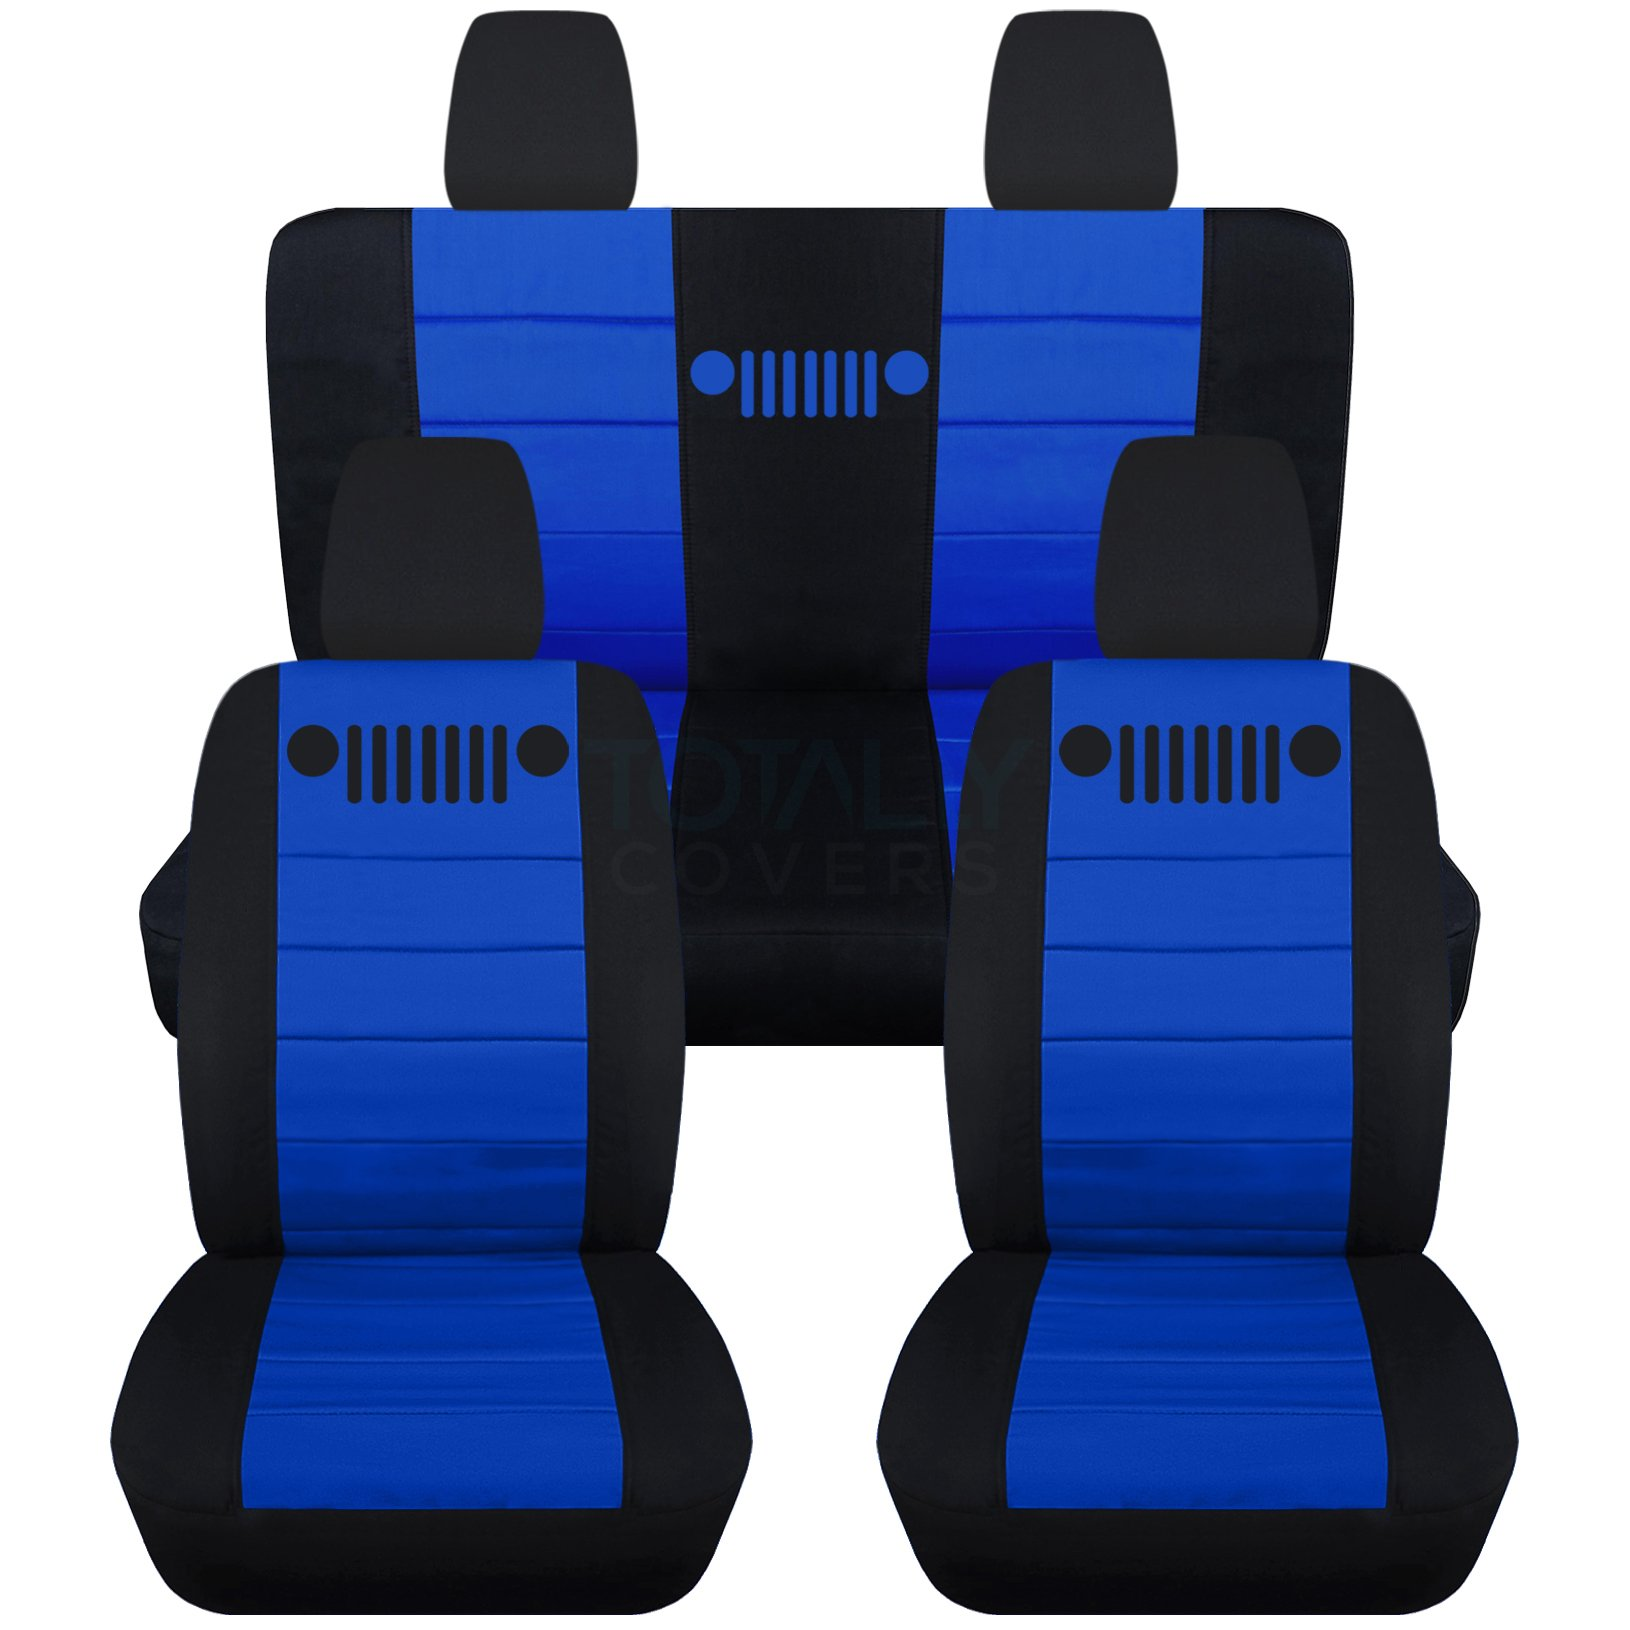 Totally Covers Fits 2011-2018 Jeep Wrangler JK Seat Covers: Black & Dark Blue - Full Set: Front & Rear (23 Colors) 2012 2013 2014 2015 2016 2017 2-Door/4-Door Complete Back Solid/Split Bench